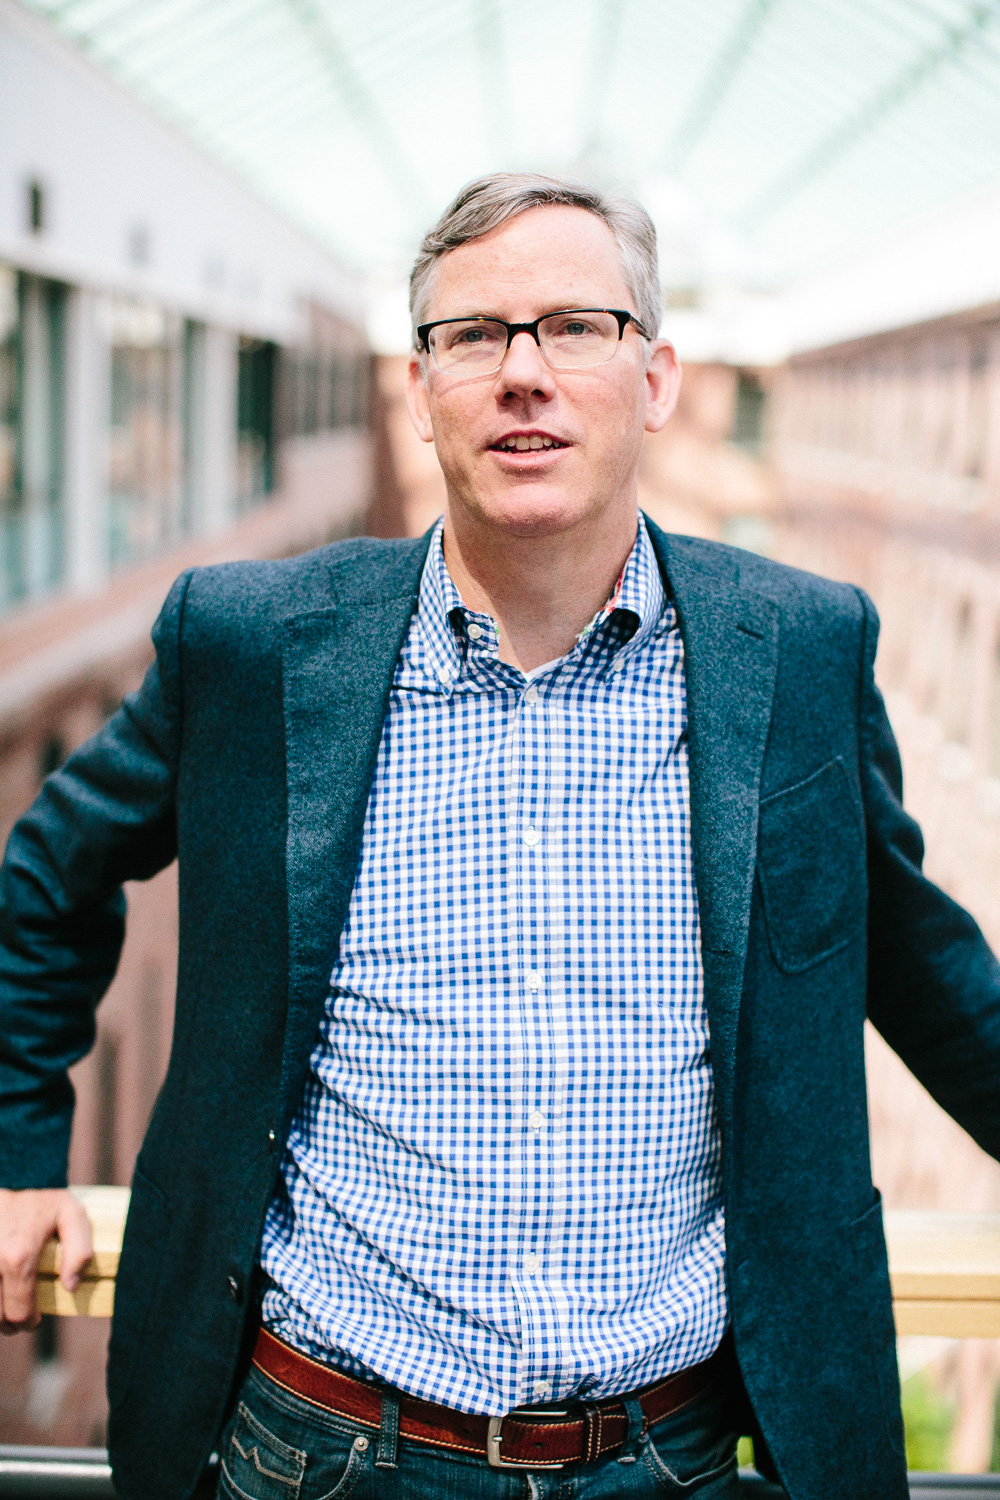 Brian Halligan - CEO & Co-Founder HubSpot